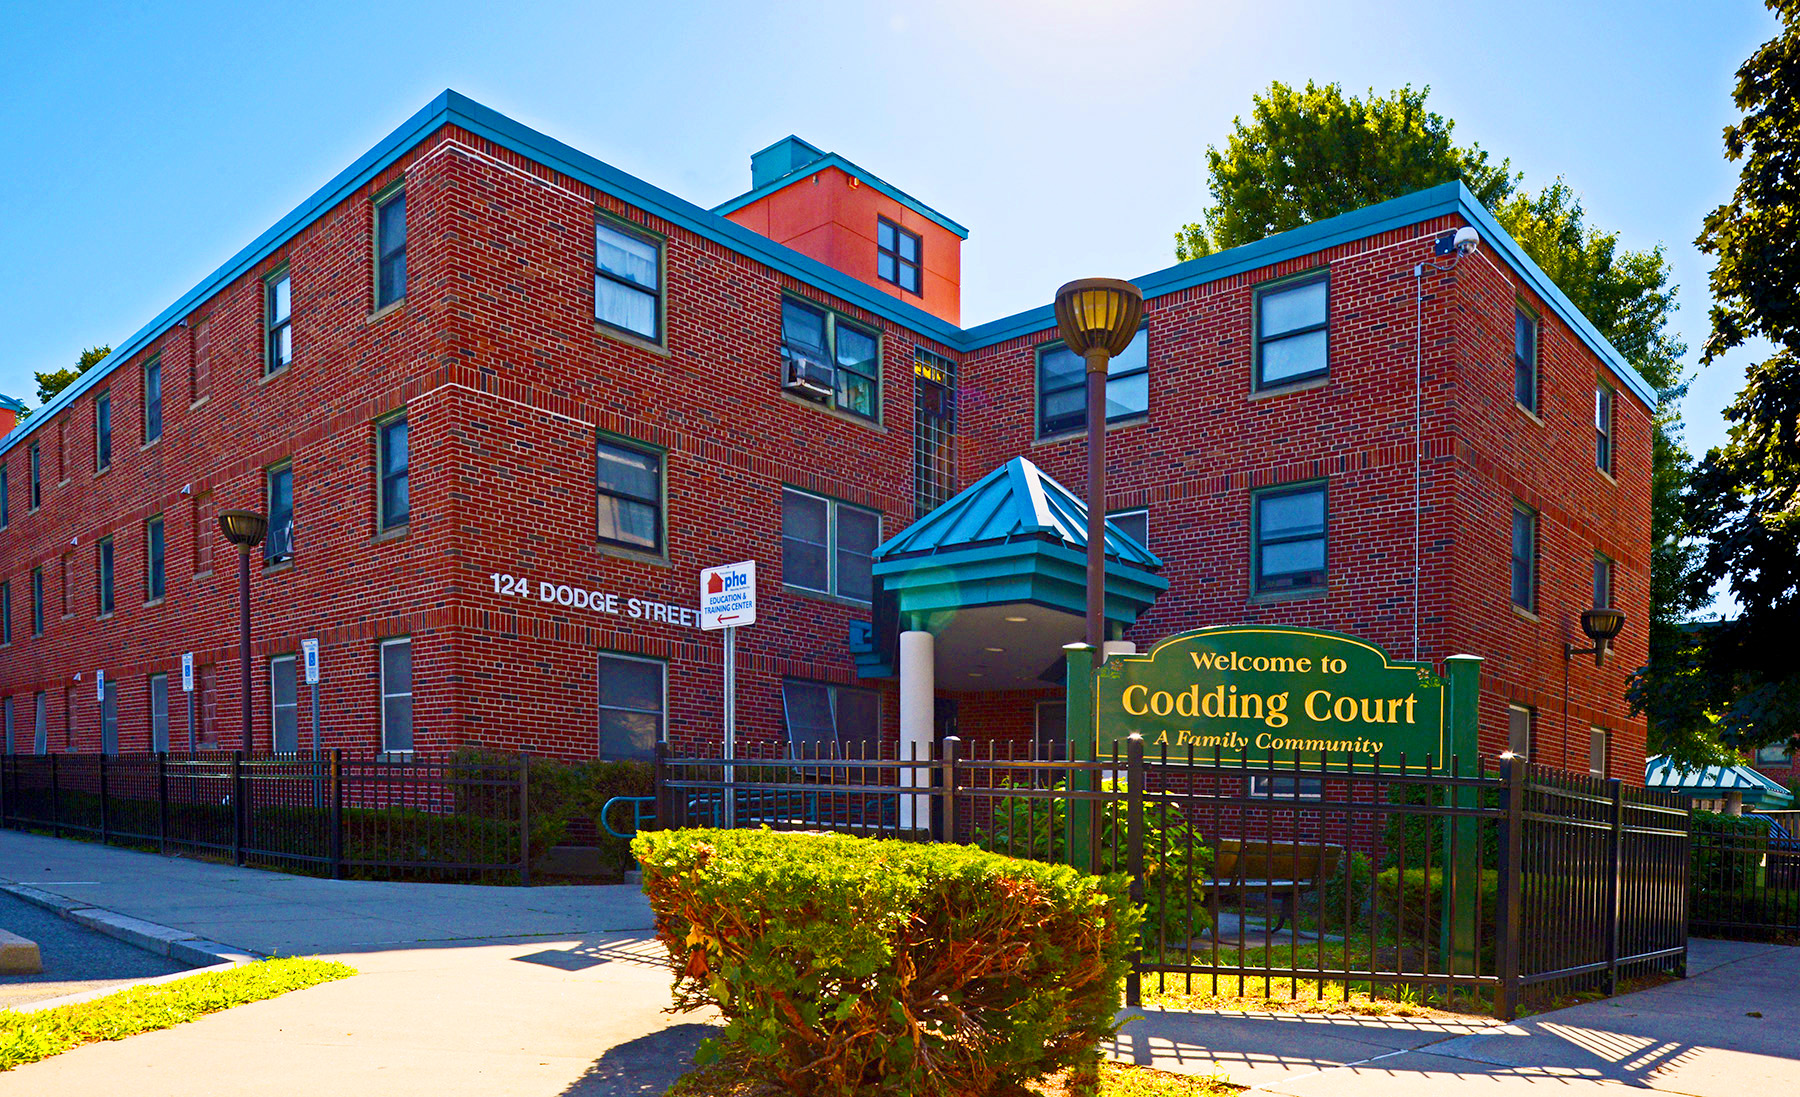 Image of Codding Court in Providence, Rhode Island